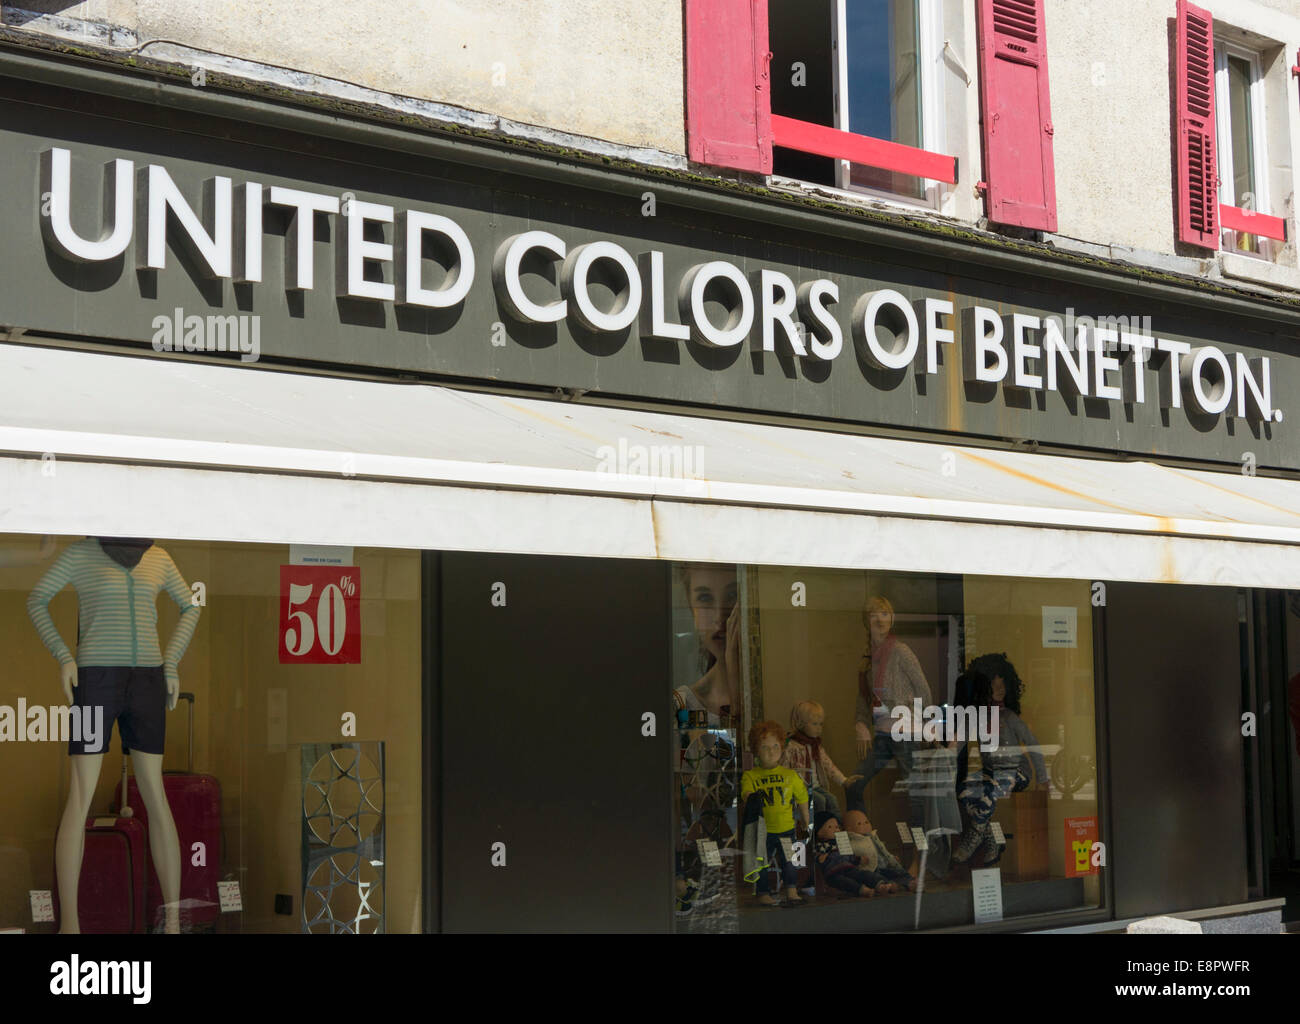 United Colors of Benetton store in France, Europe - Stock Image